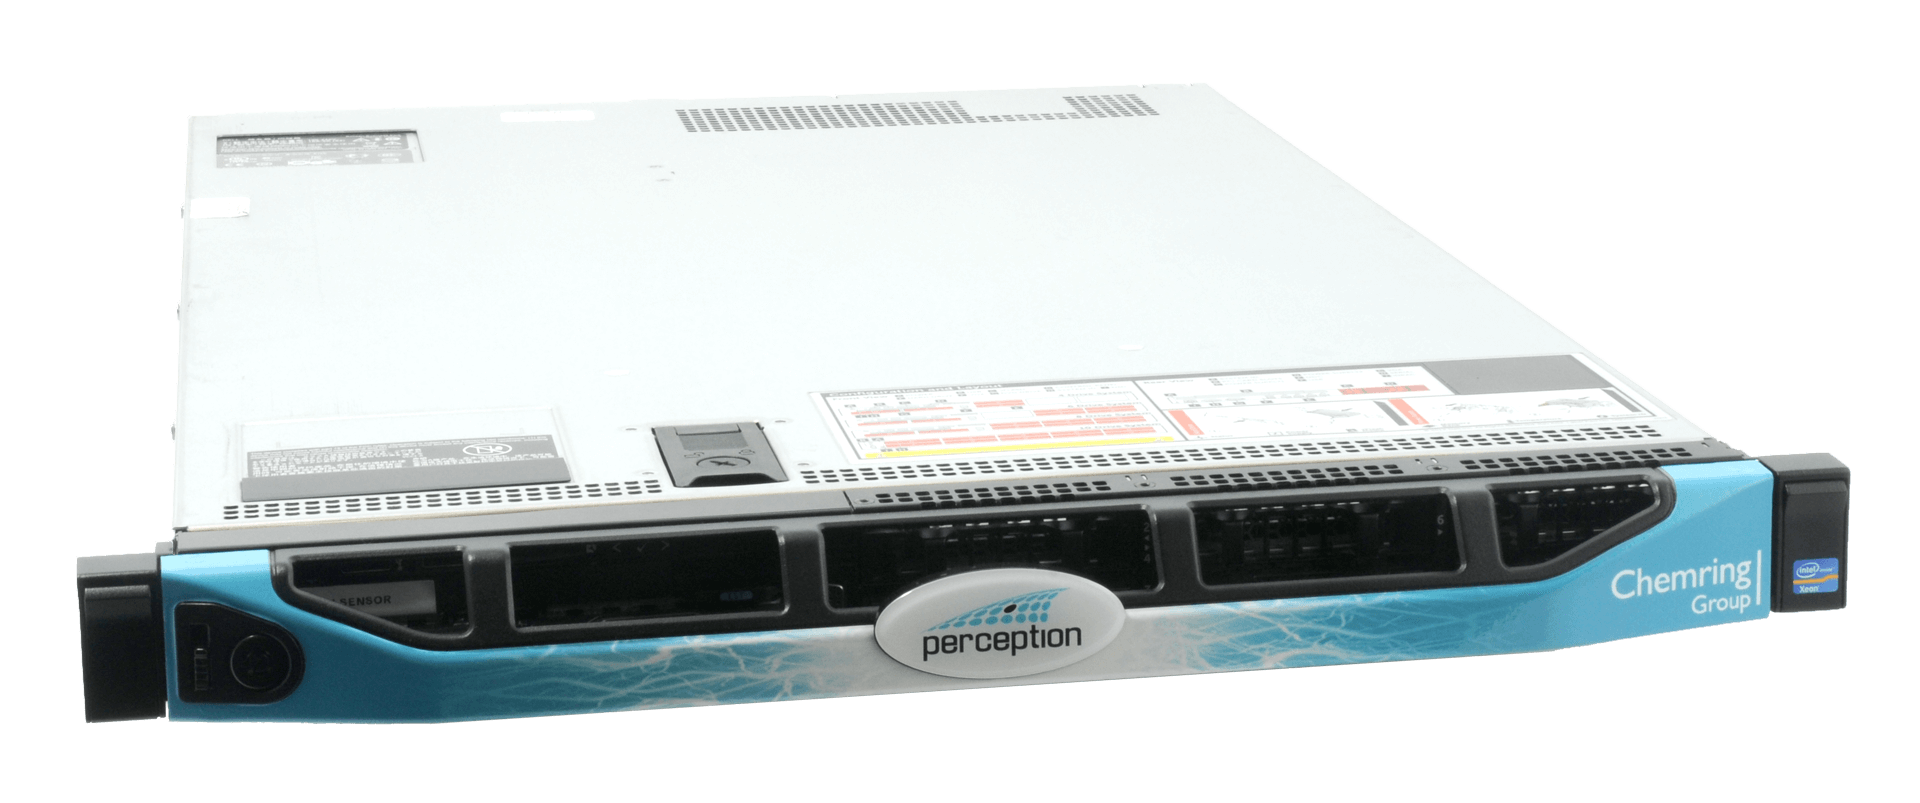 Perception sensors are easily deployed, consisting of a 1U rack mounted device.